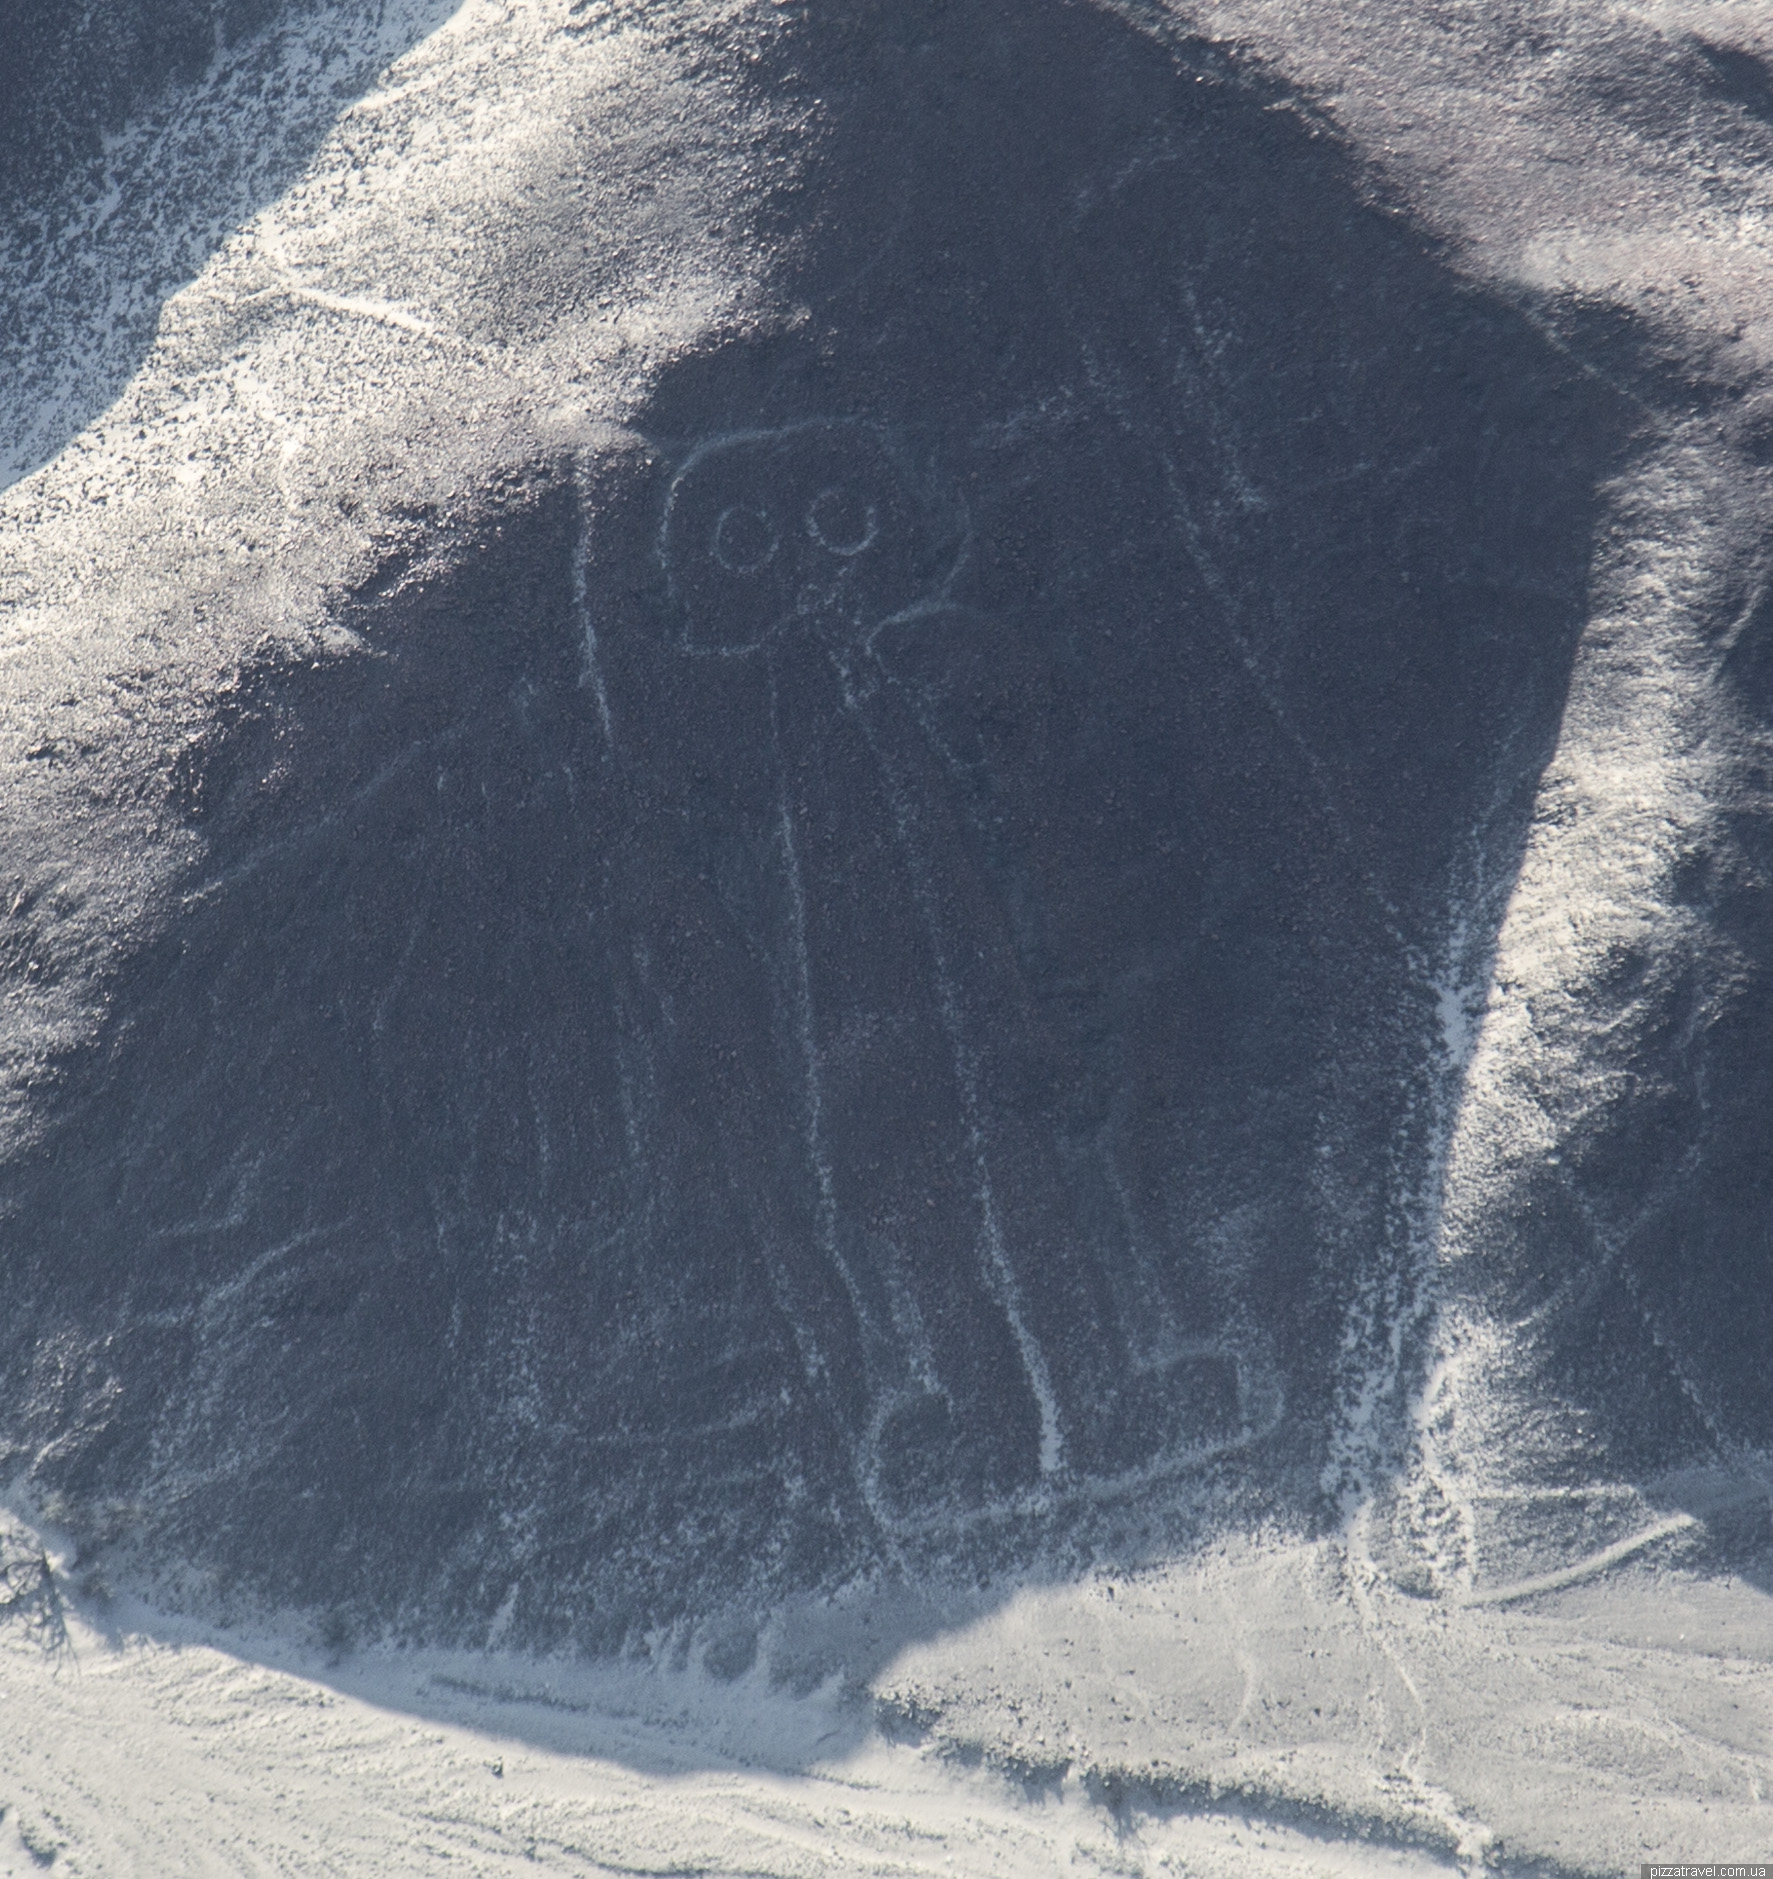 ethnography on the nazca lines The nazca lines /ˈnæzkɑː/ are a series of large ancient geoglyphs in the  nazca desert,  in 1985, archaeologist johan reinhard published  archaeological, ethnographic, and historical data demonstrating that worship of  mountains and.